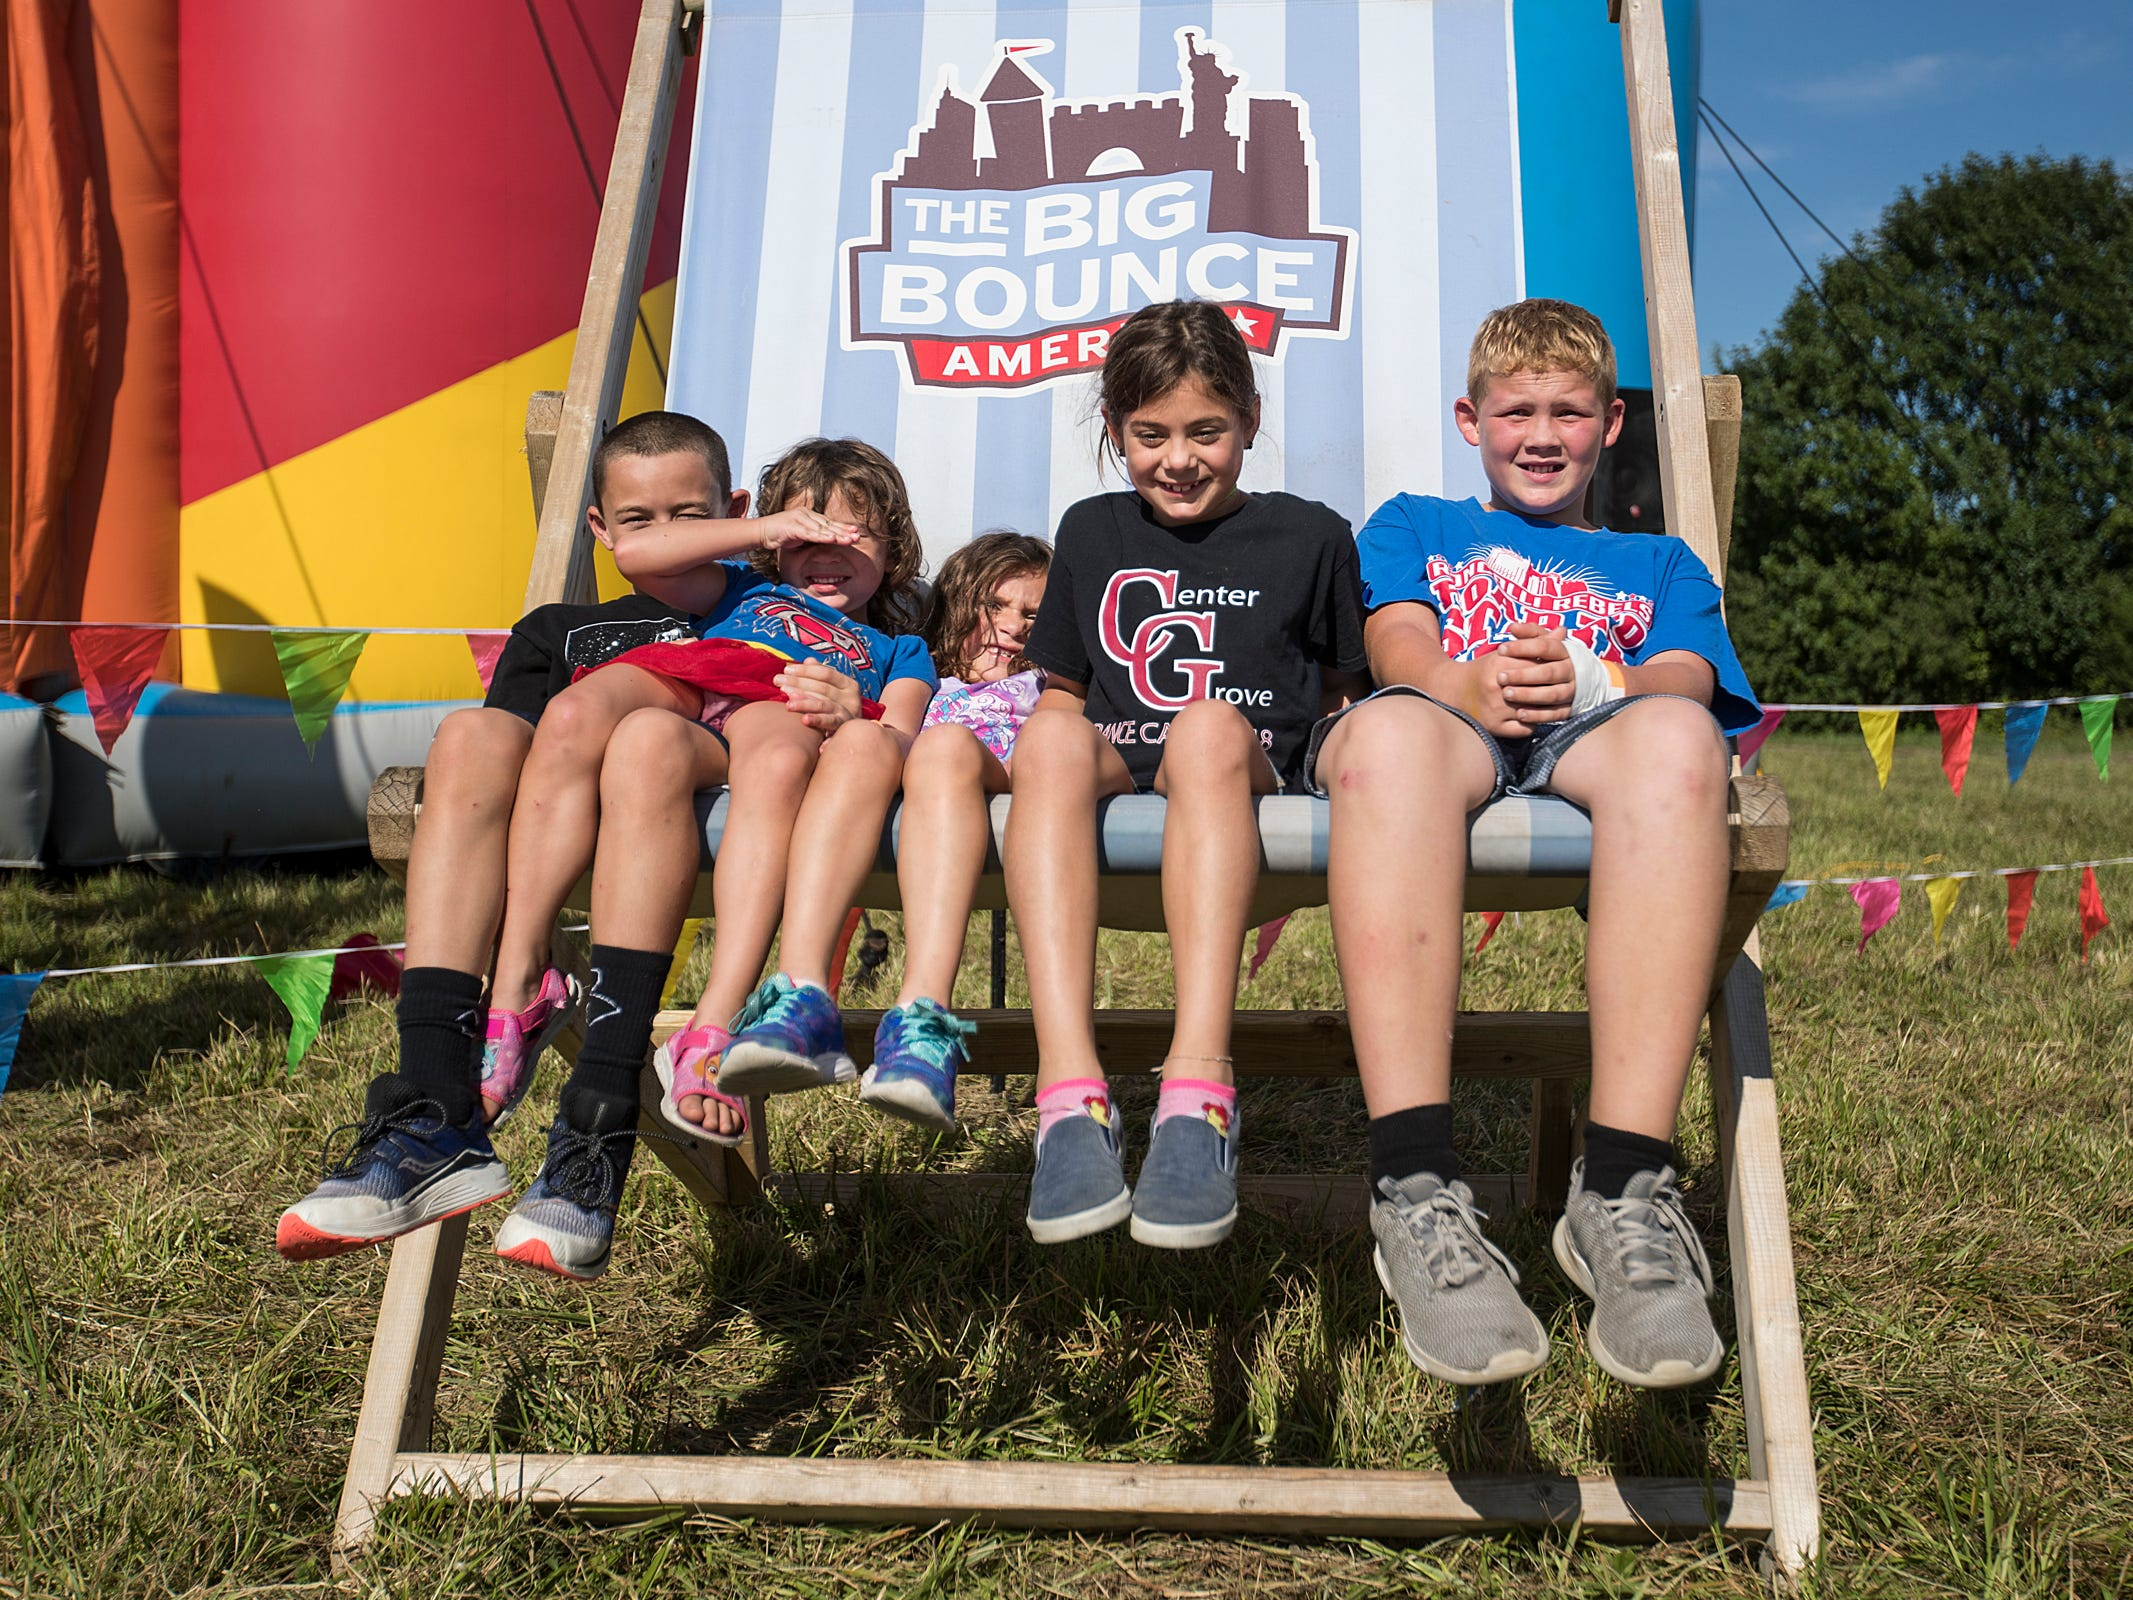 Kids sit for a picture on a giant lawn chair in front of the Big Bounce America inflatable attraction at Waterman's Family Farm in Indianapolis, Friday, Sept. 14, 2018. The world's largest bounce house covers 10,000 square feet and will be in Indy though September 16.